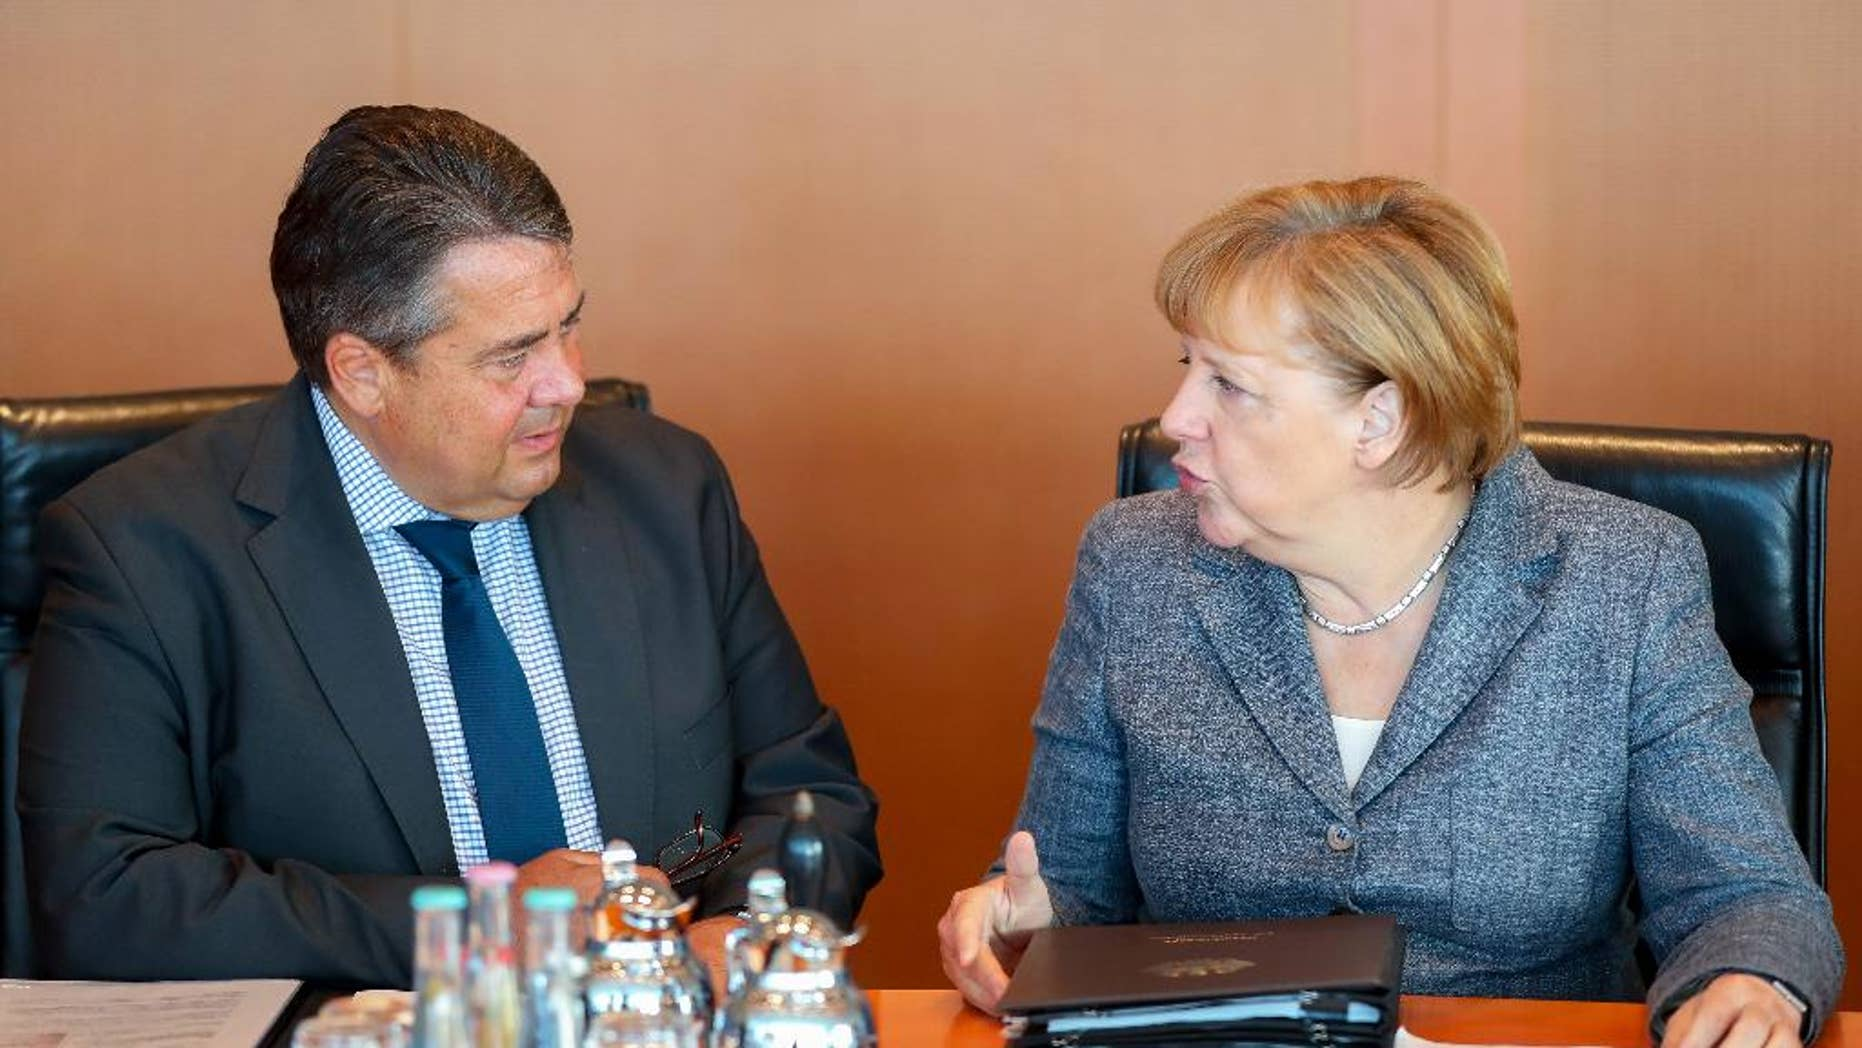 German Chancellor Angela Merkel, right,  and German Economics Minister Sigmar Gabriel attend  a cabinet meeting at the chancellery  in Berlin, Germany,  Wednesday  Aug. 17,  2016.  (Kay Nietfeld/dpa via AP)